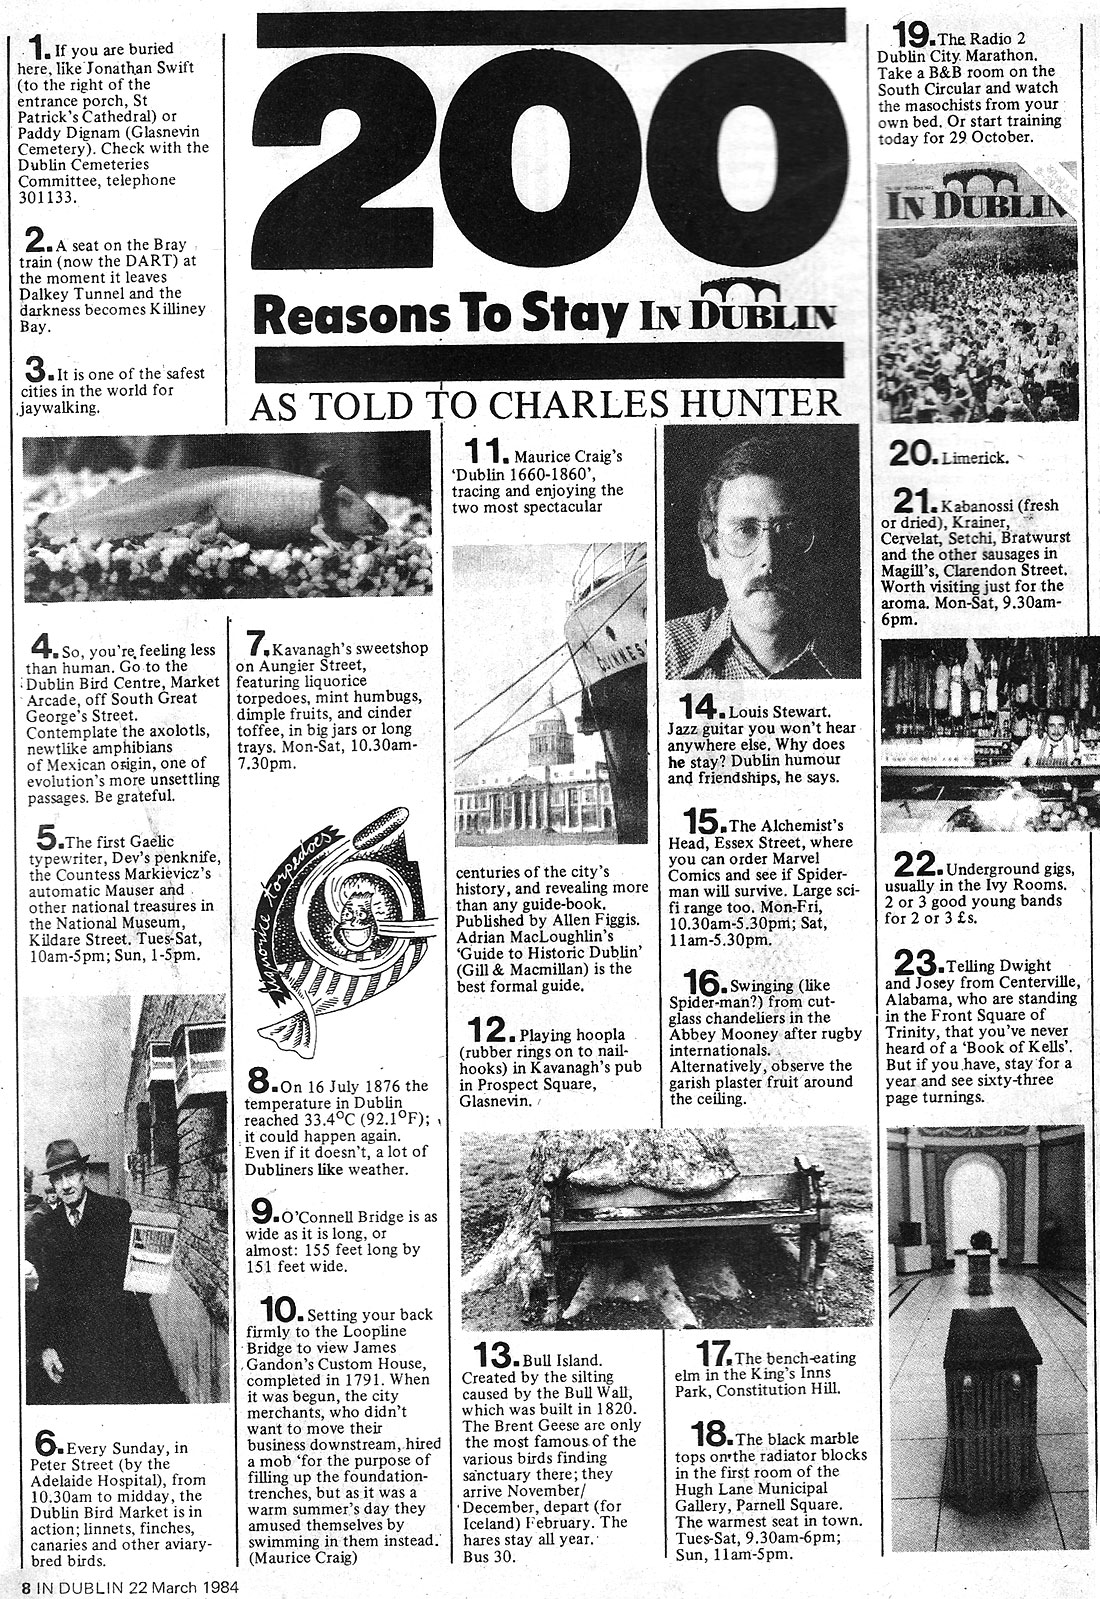 in dublin magazine march 1984 200 reasons to stay in dublin 1-23